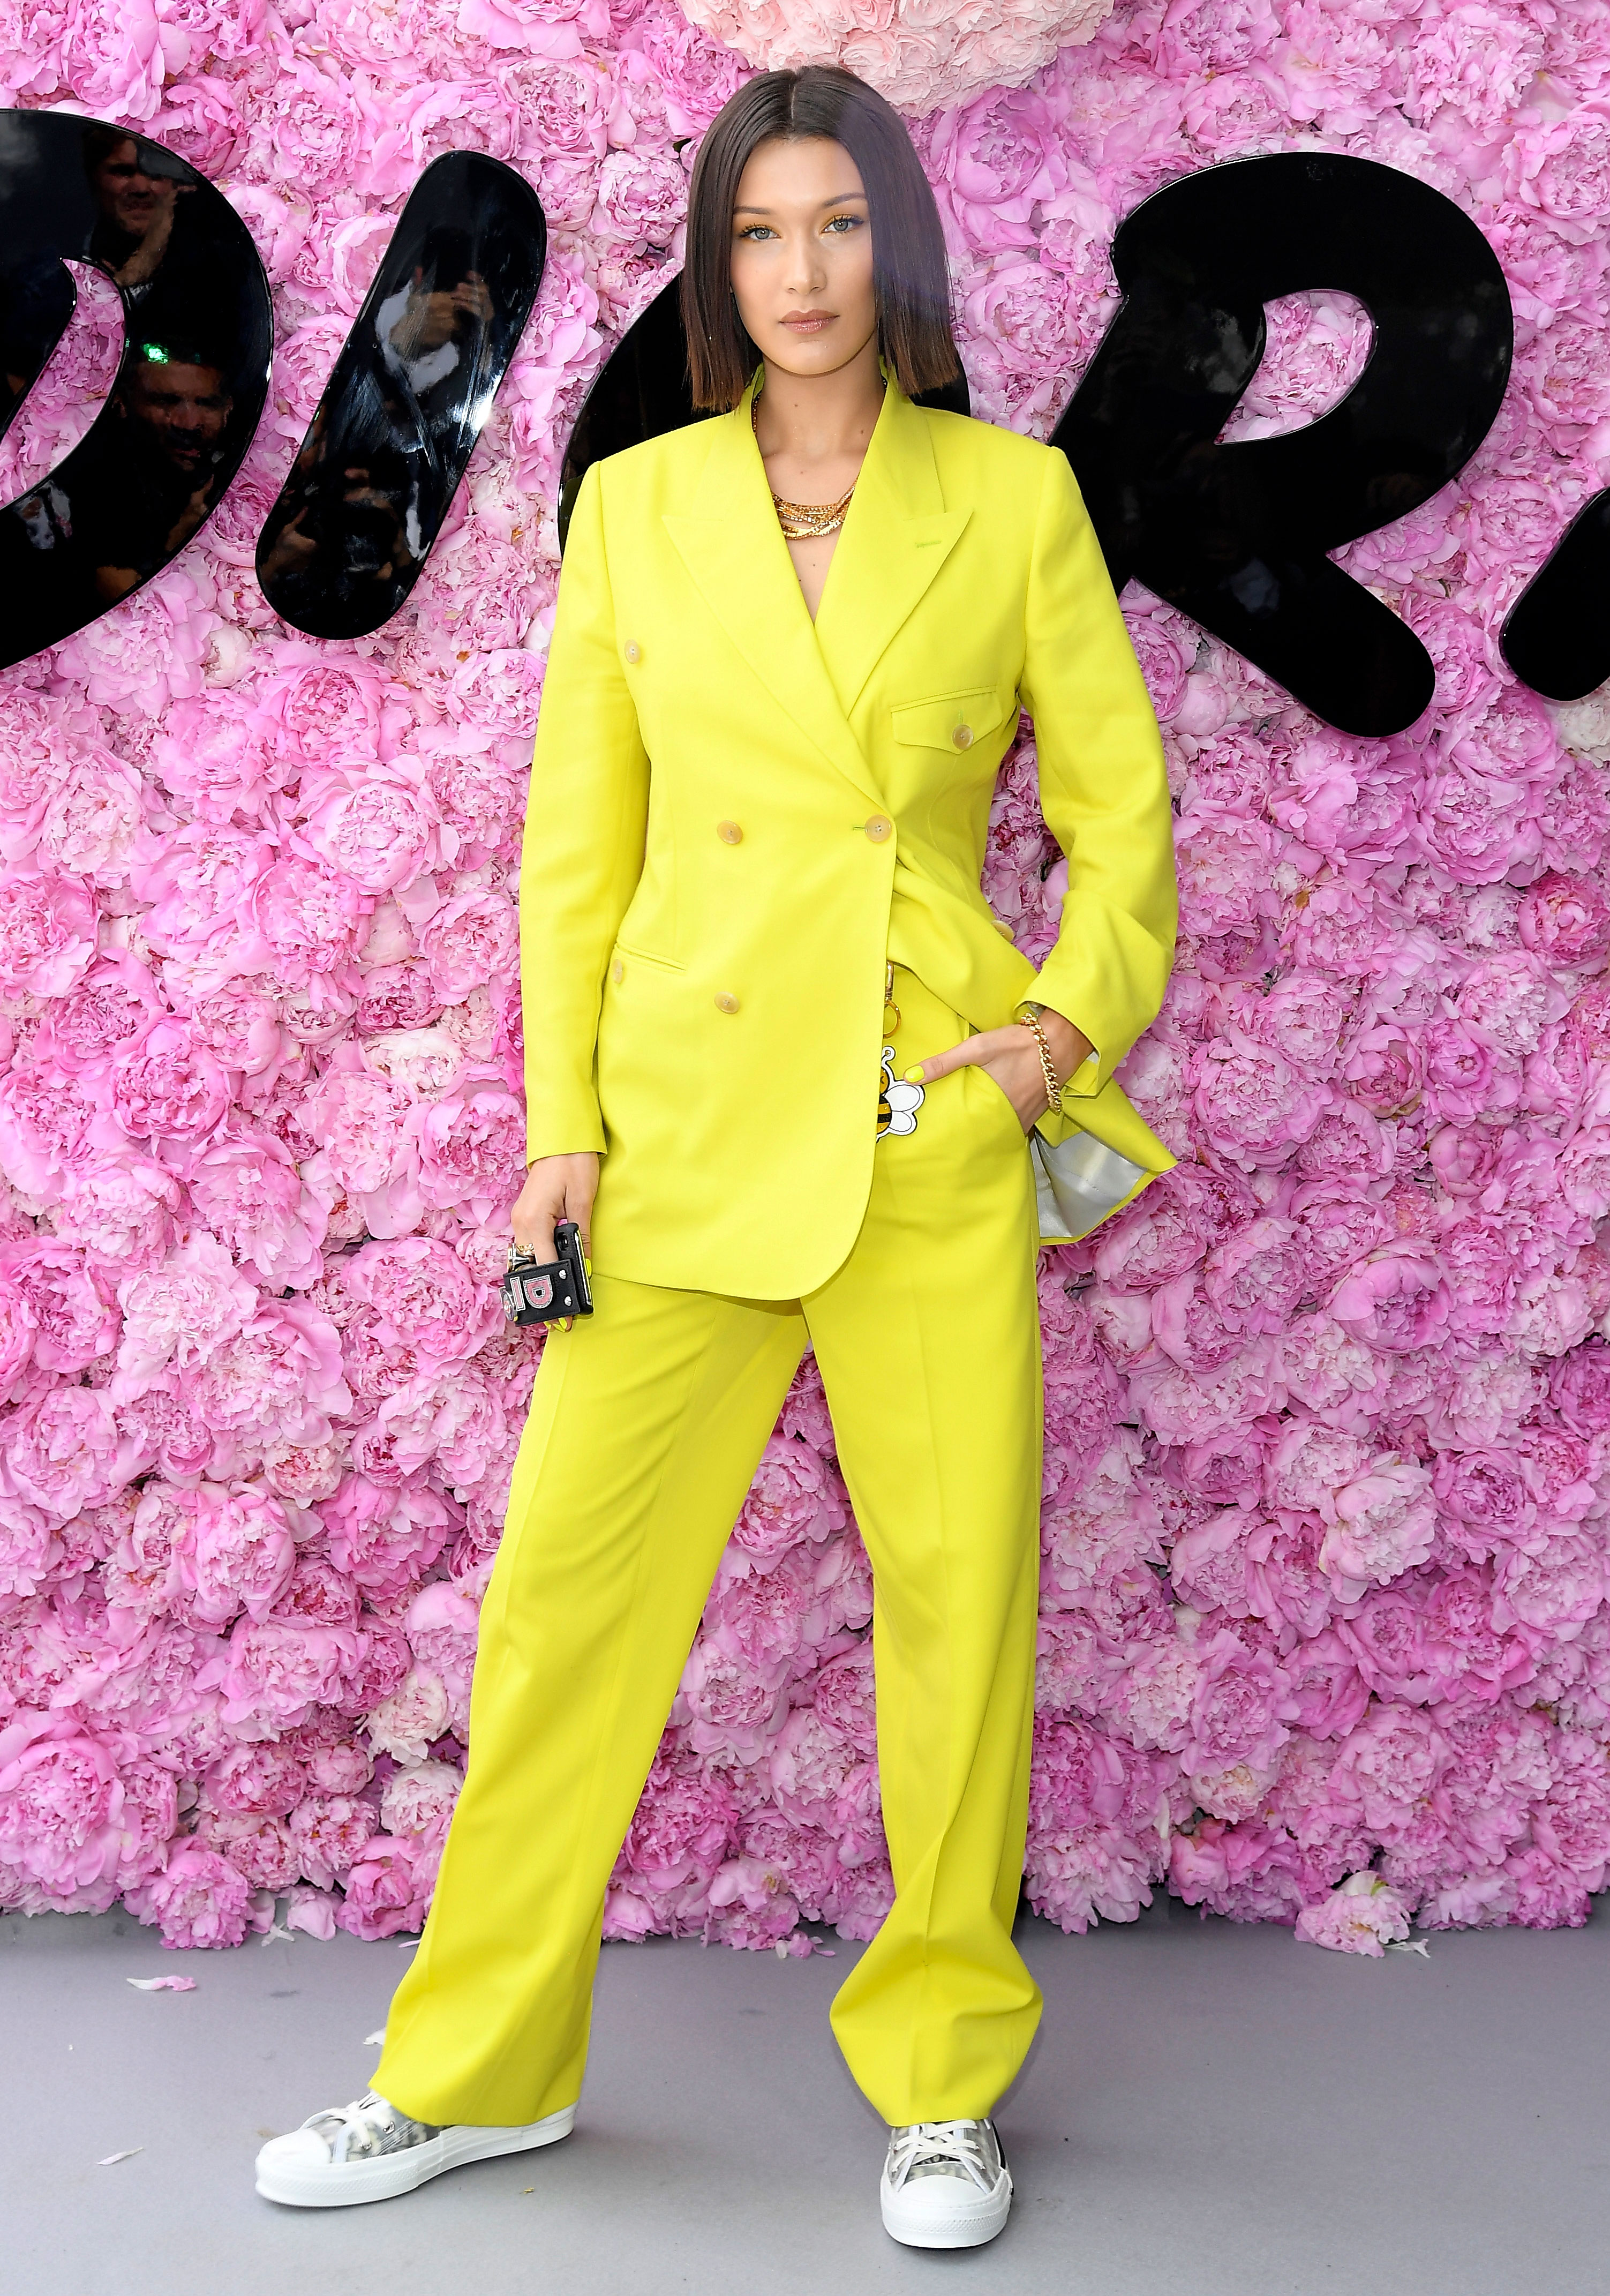 4ff2d178dce3ae Monochrome Yellow Outfit Fashion Trend: Gigi Hadid, More